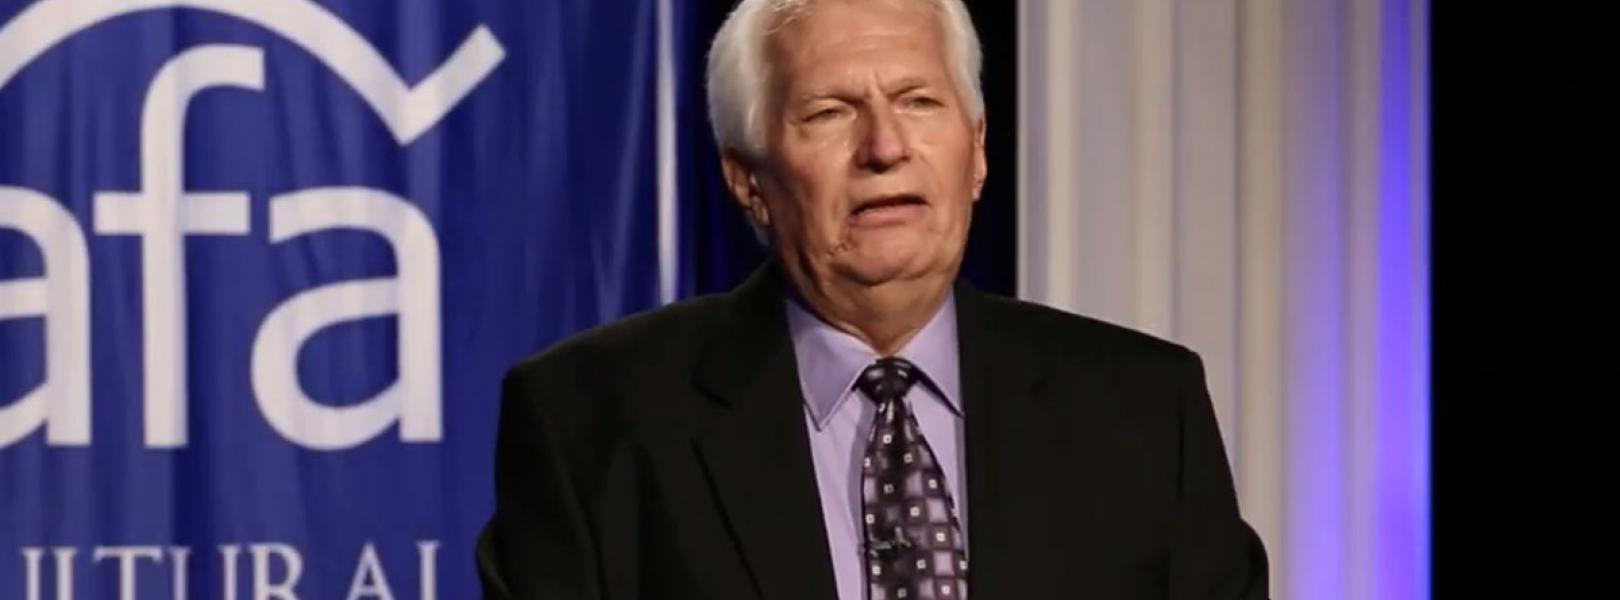 AFR host Bryan Fischer uses Boy Scout sexual abuse case to attack LGBTQ people